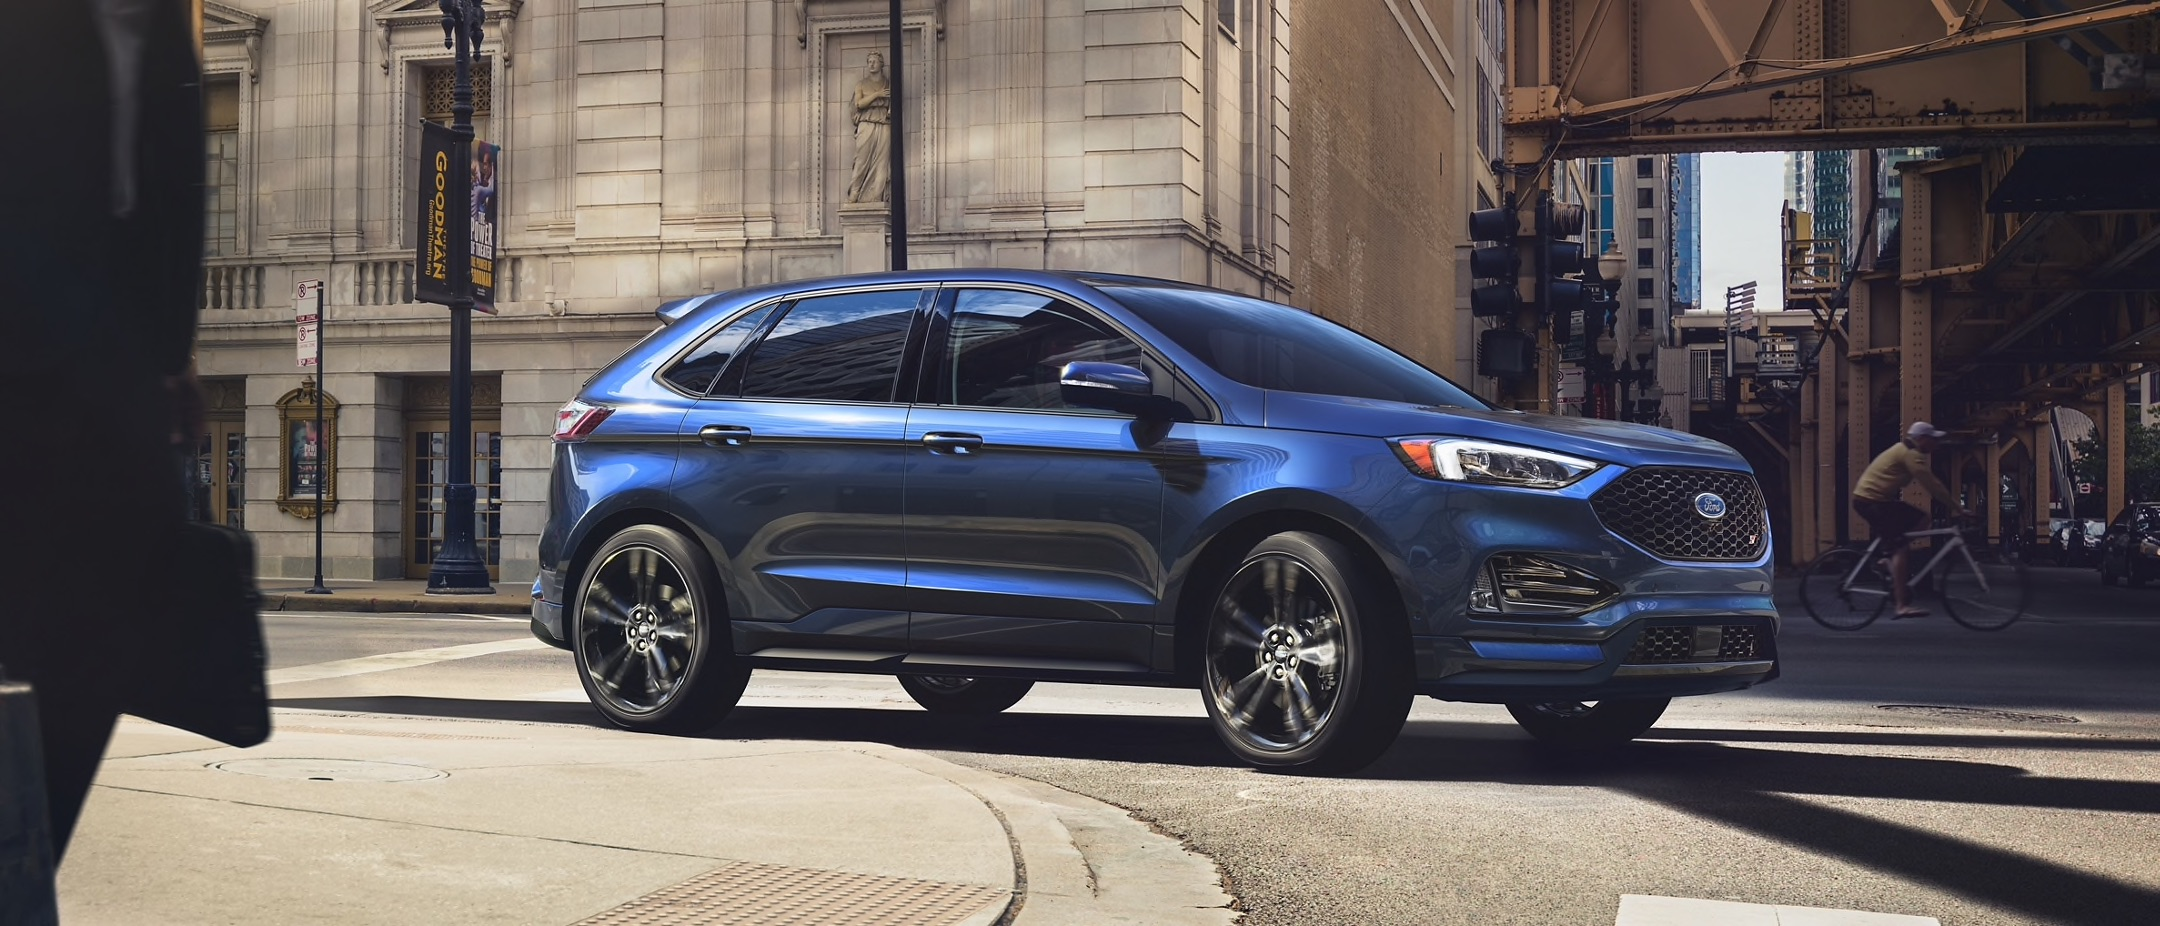 Blue 2021 Ford Edge parked on a city street